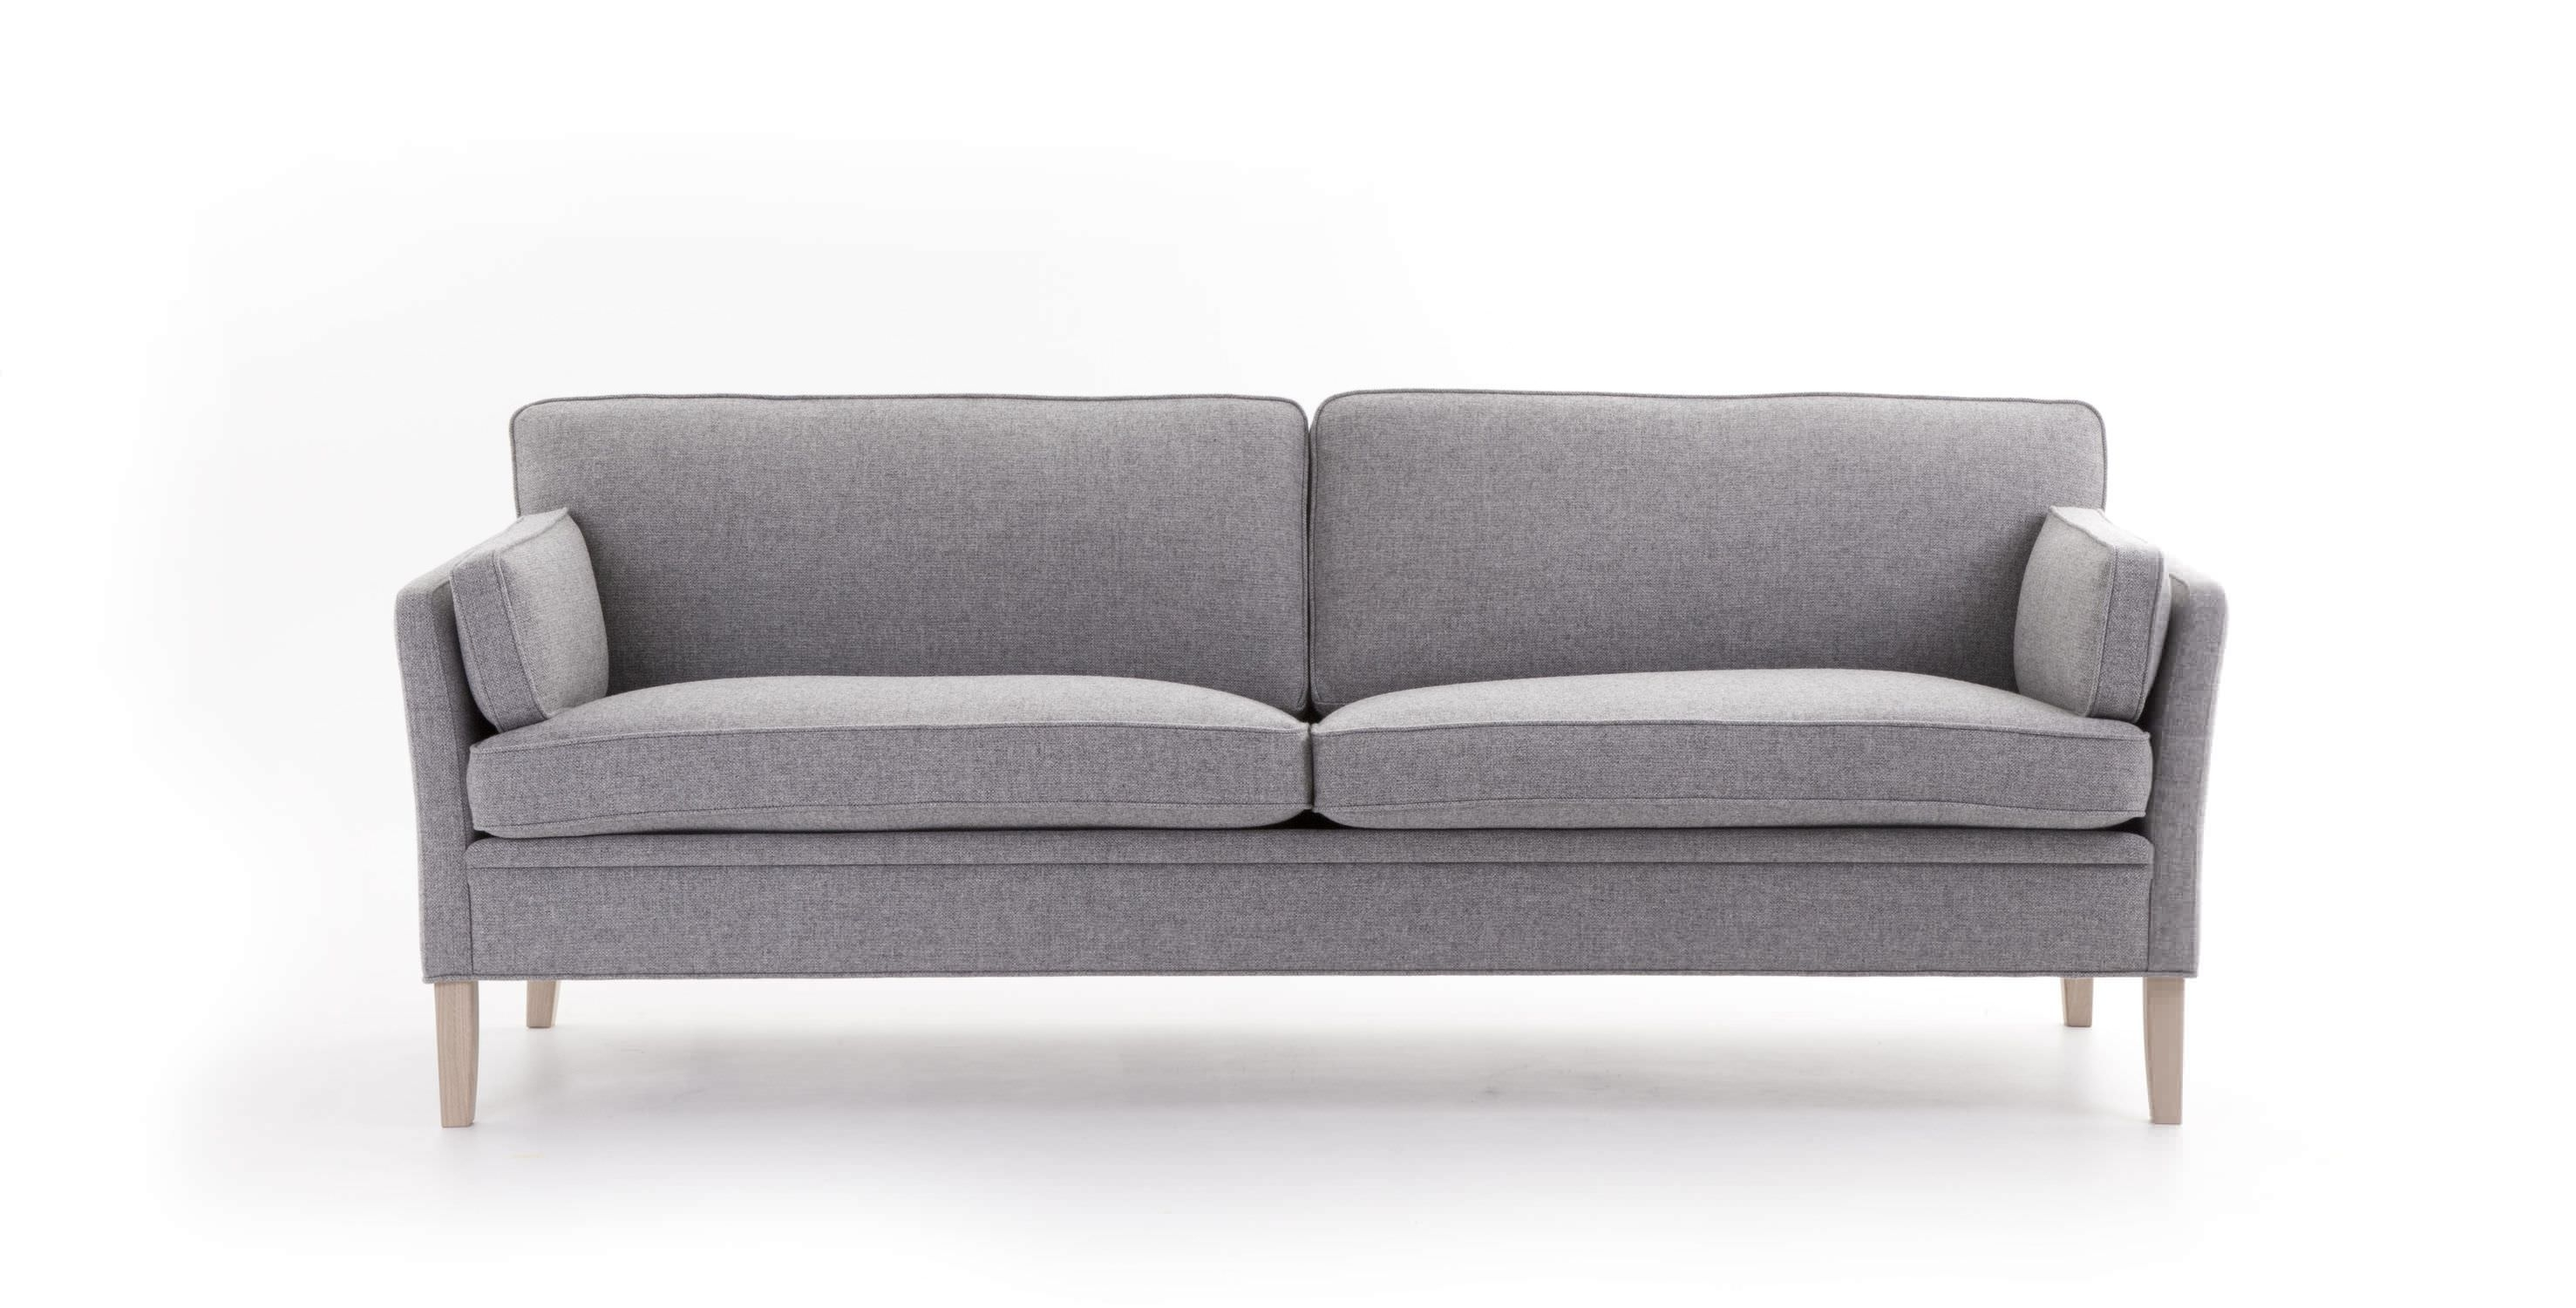 Removable Cover Sofa – Home And Textiles Within Sofas With Removable Cover (Gallery 4 of 10)